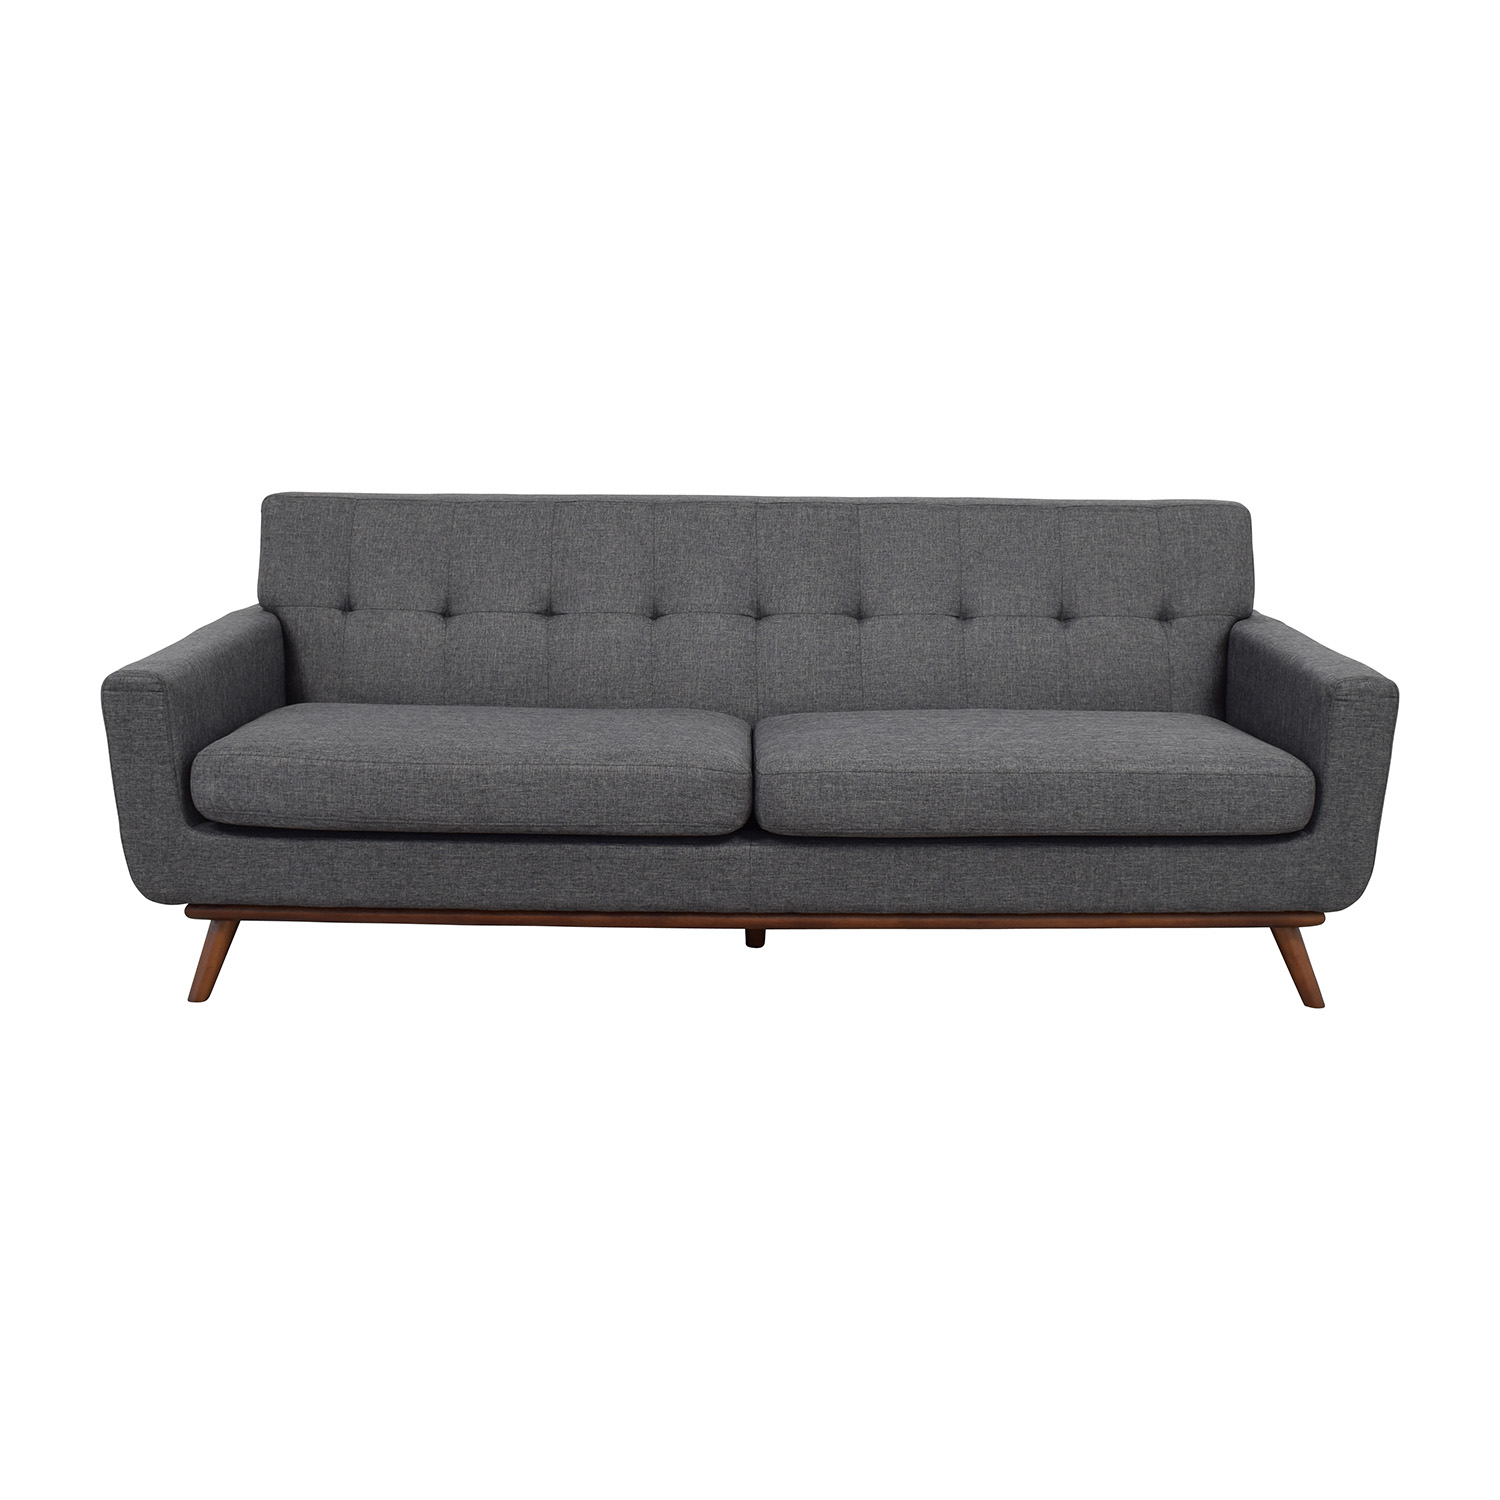 charcoal gray sofa bed sleepers beds 37 off inmod grey tufted lars sofas